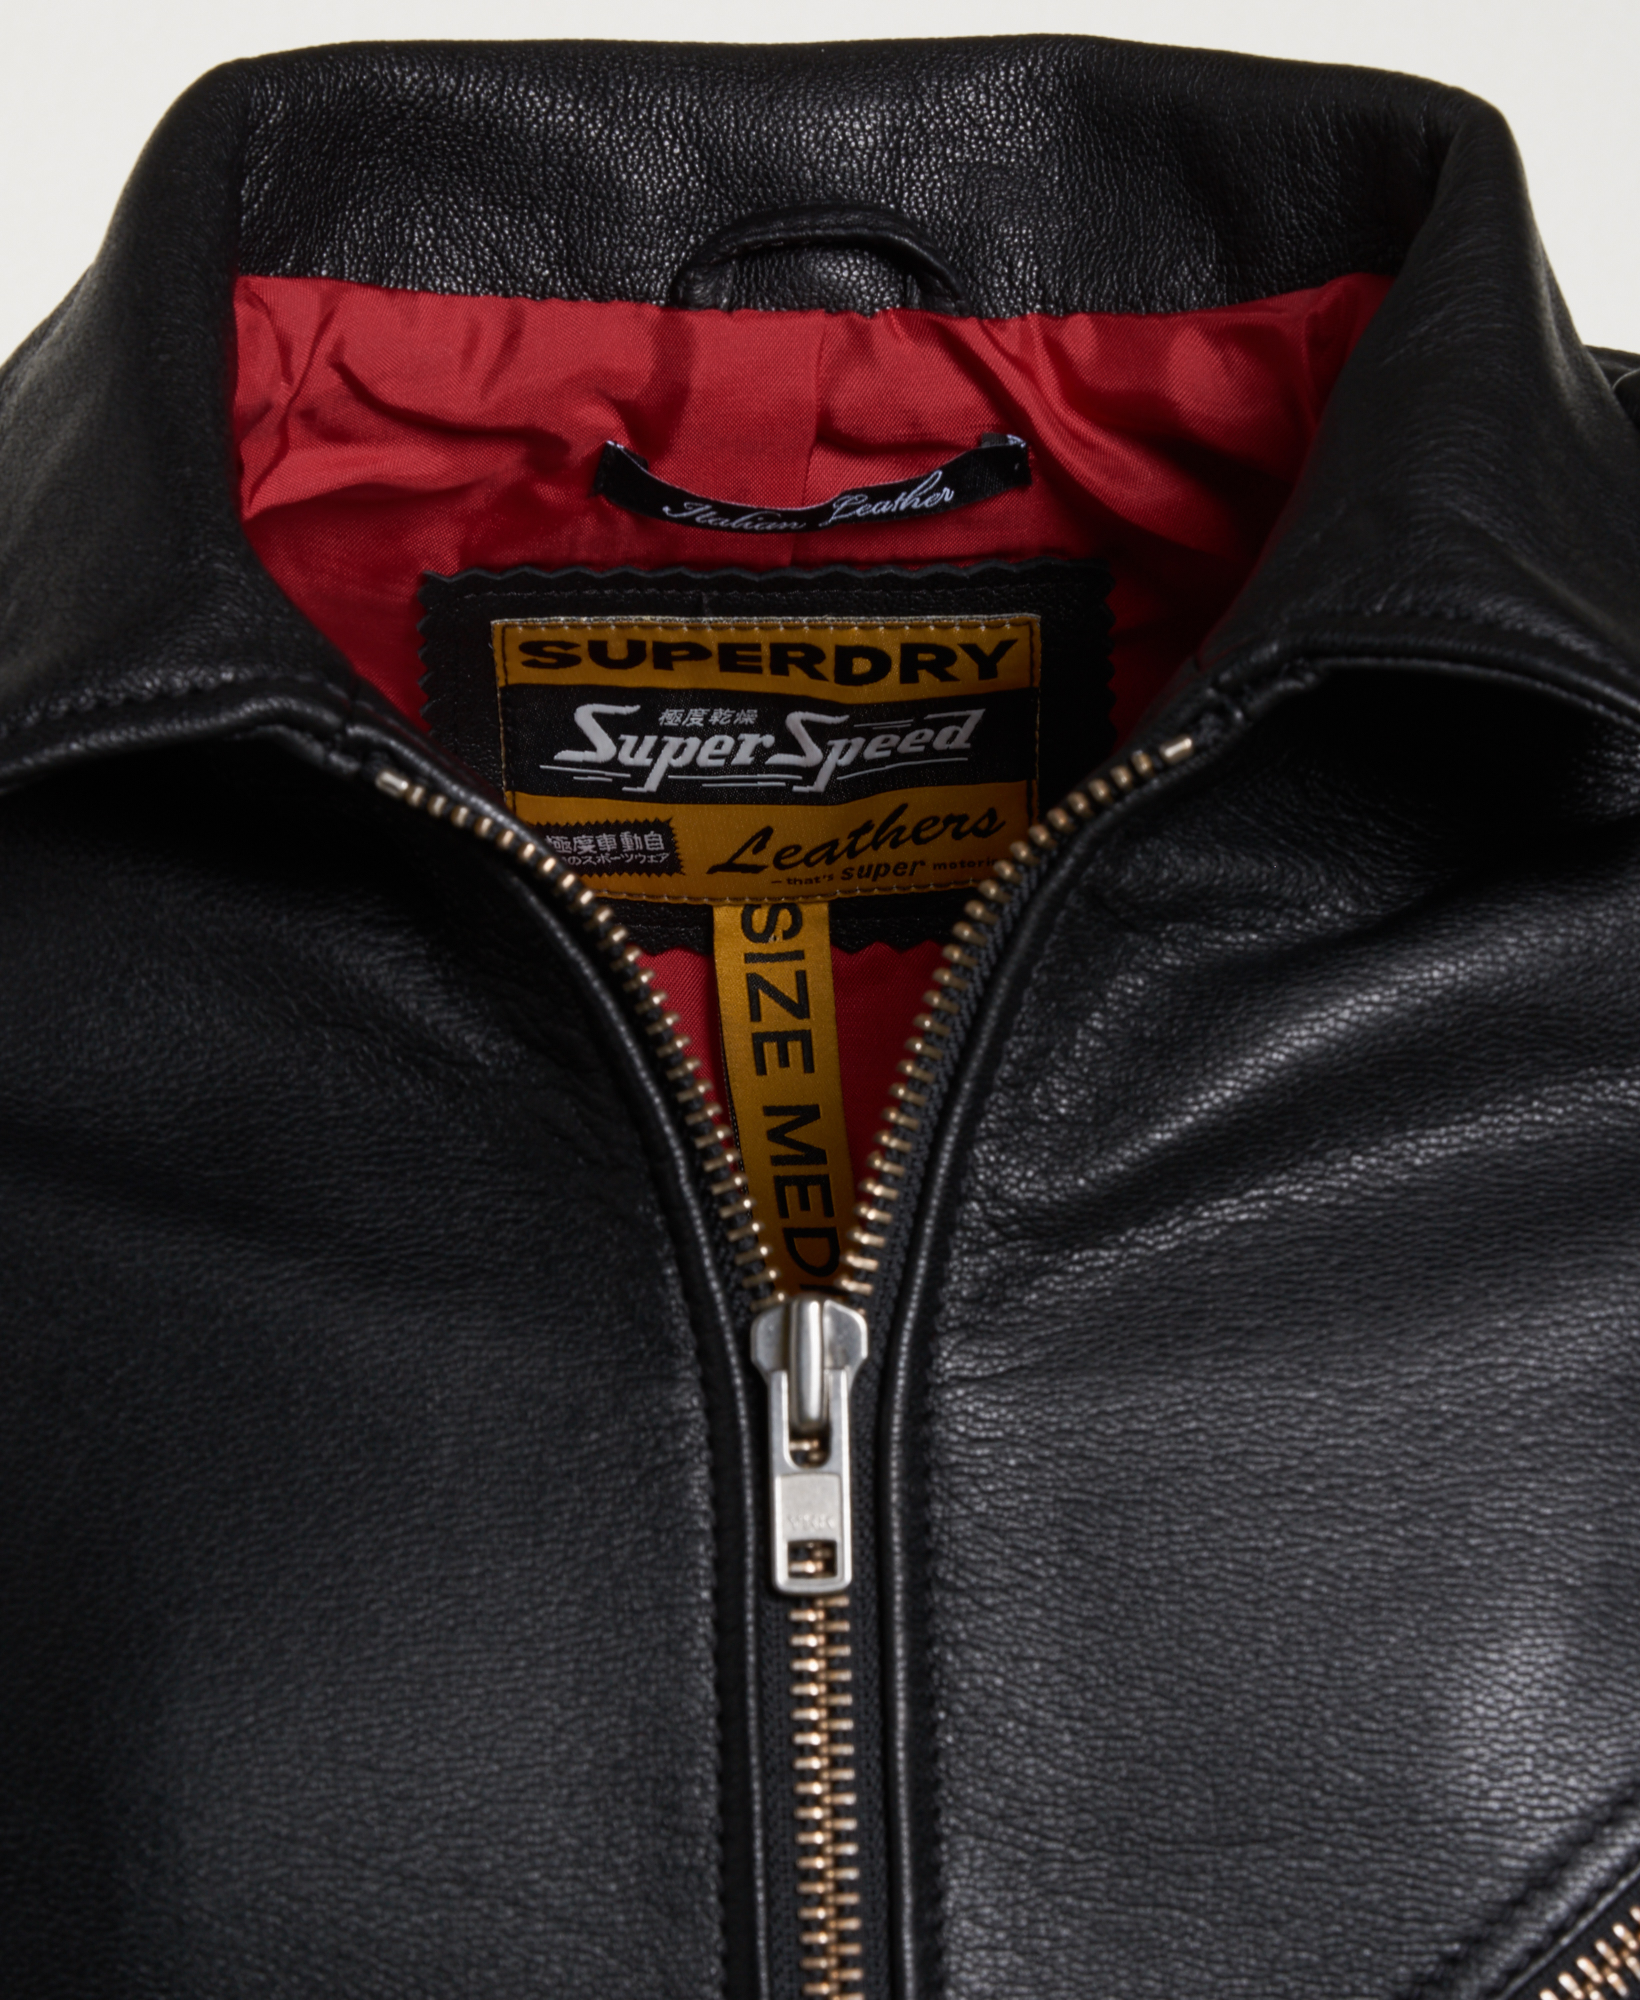 5c25d69f1 Girls clothing stores. Superdry leather jacket ebay